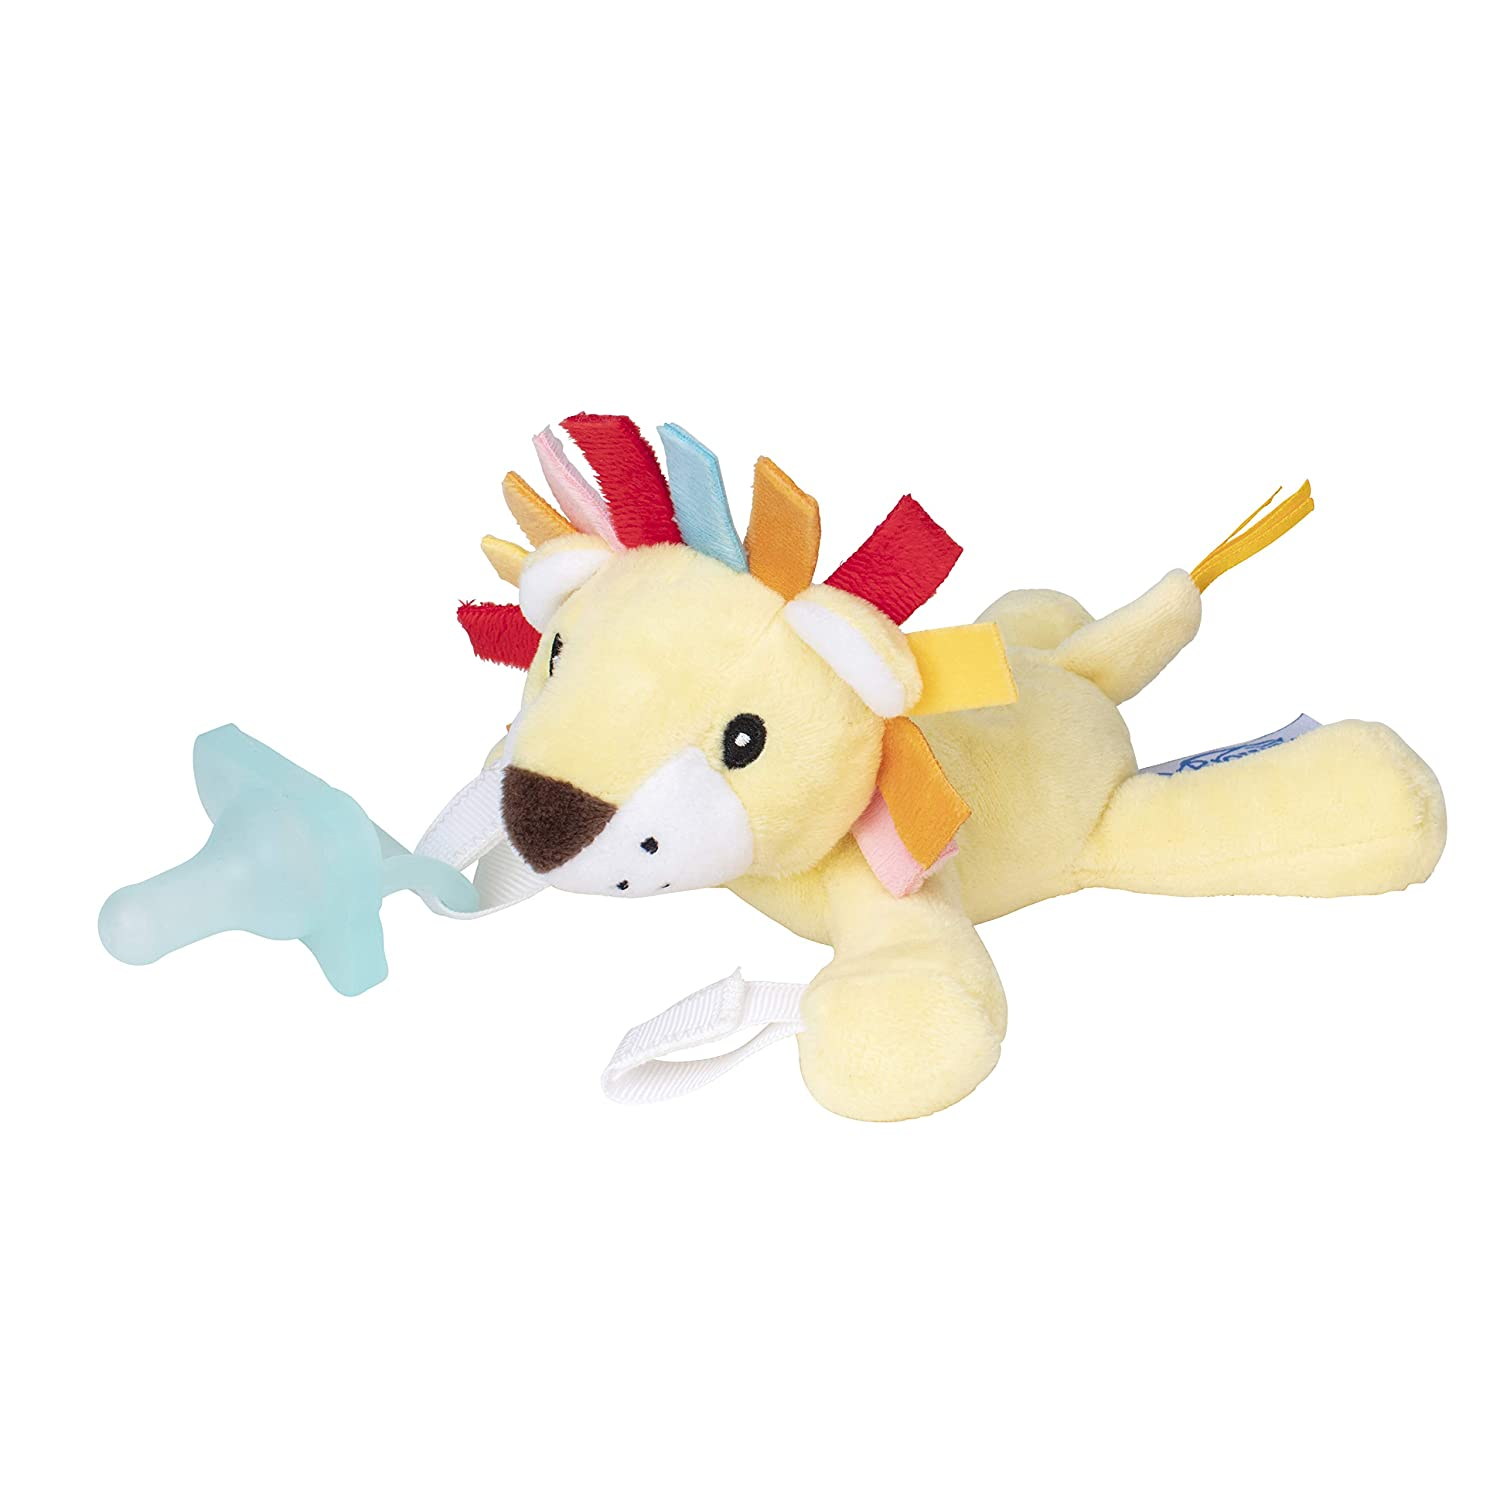 Dr. Browns Lovey Pacifier and Teether Holder, Lion with Teal, 0 Months+